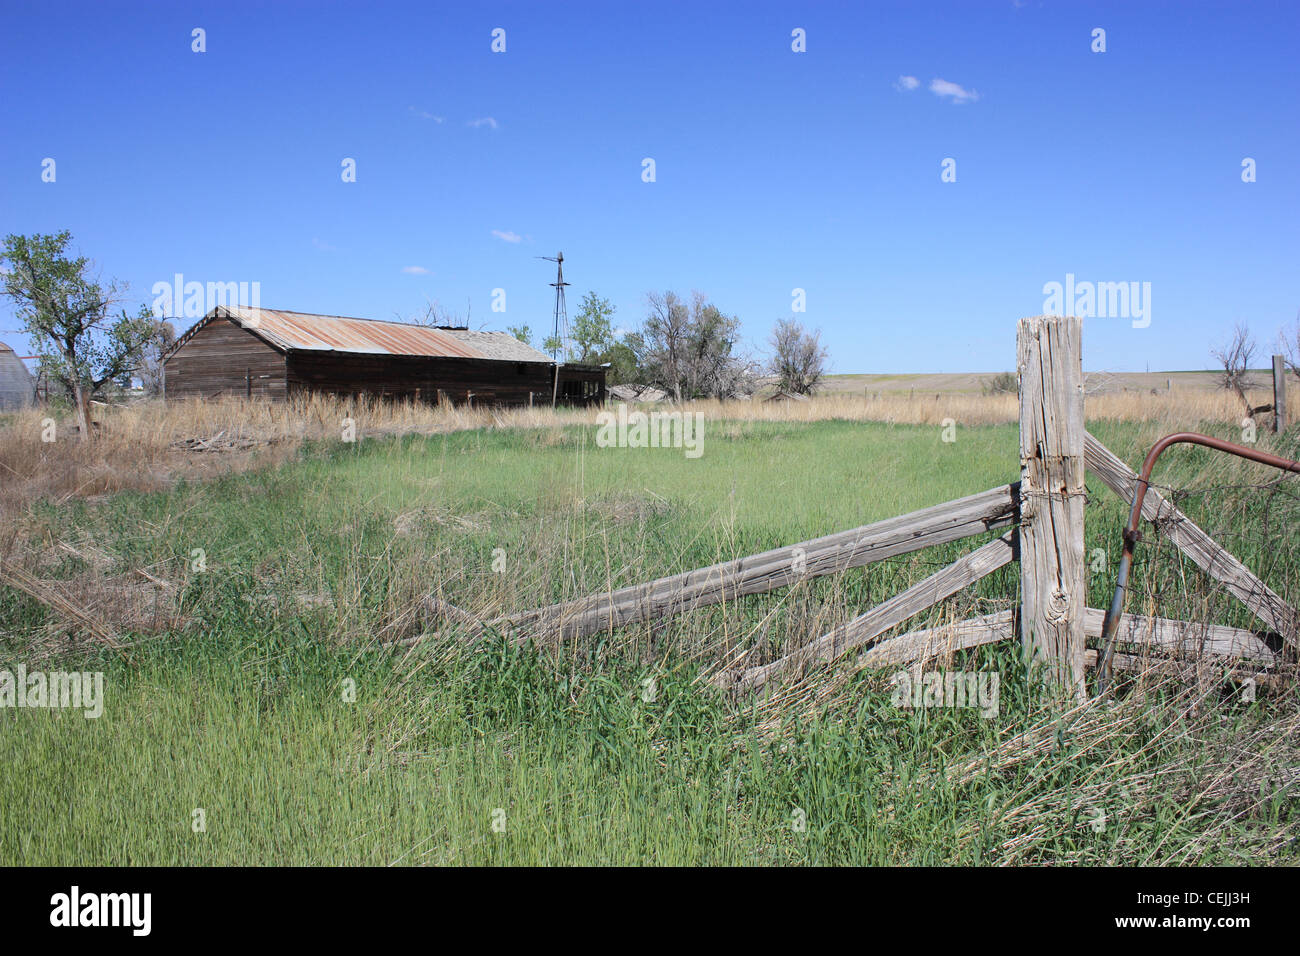 A ranch with an old barn no longer used - Stock Image